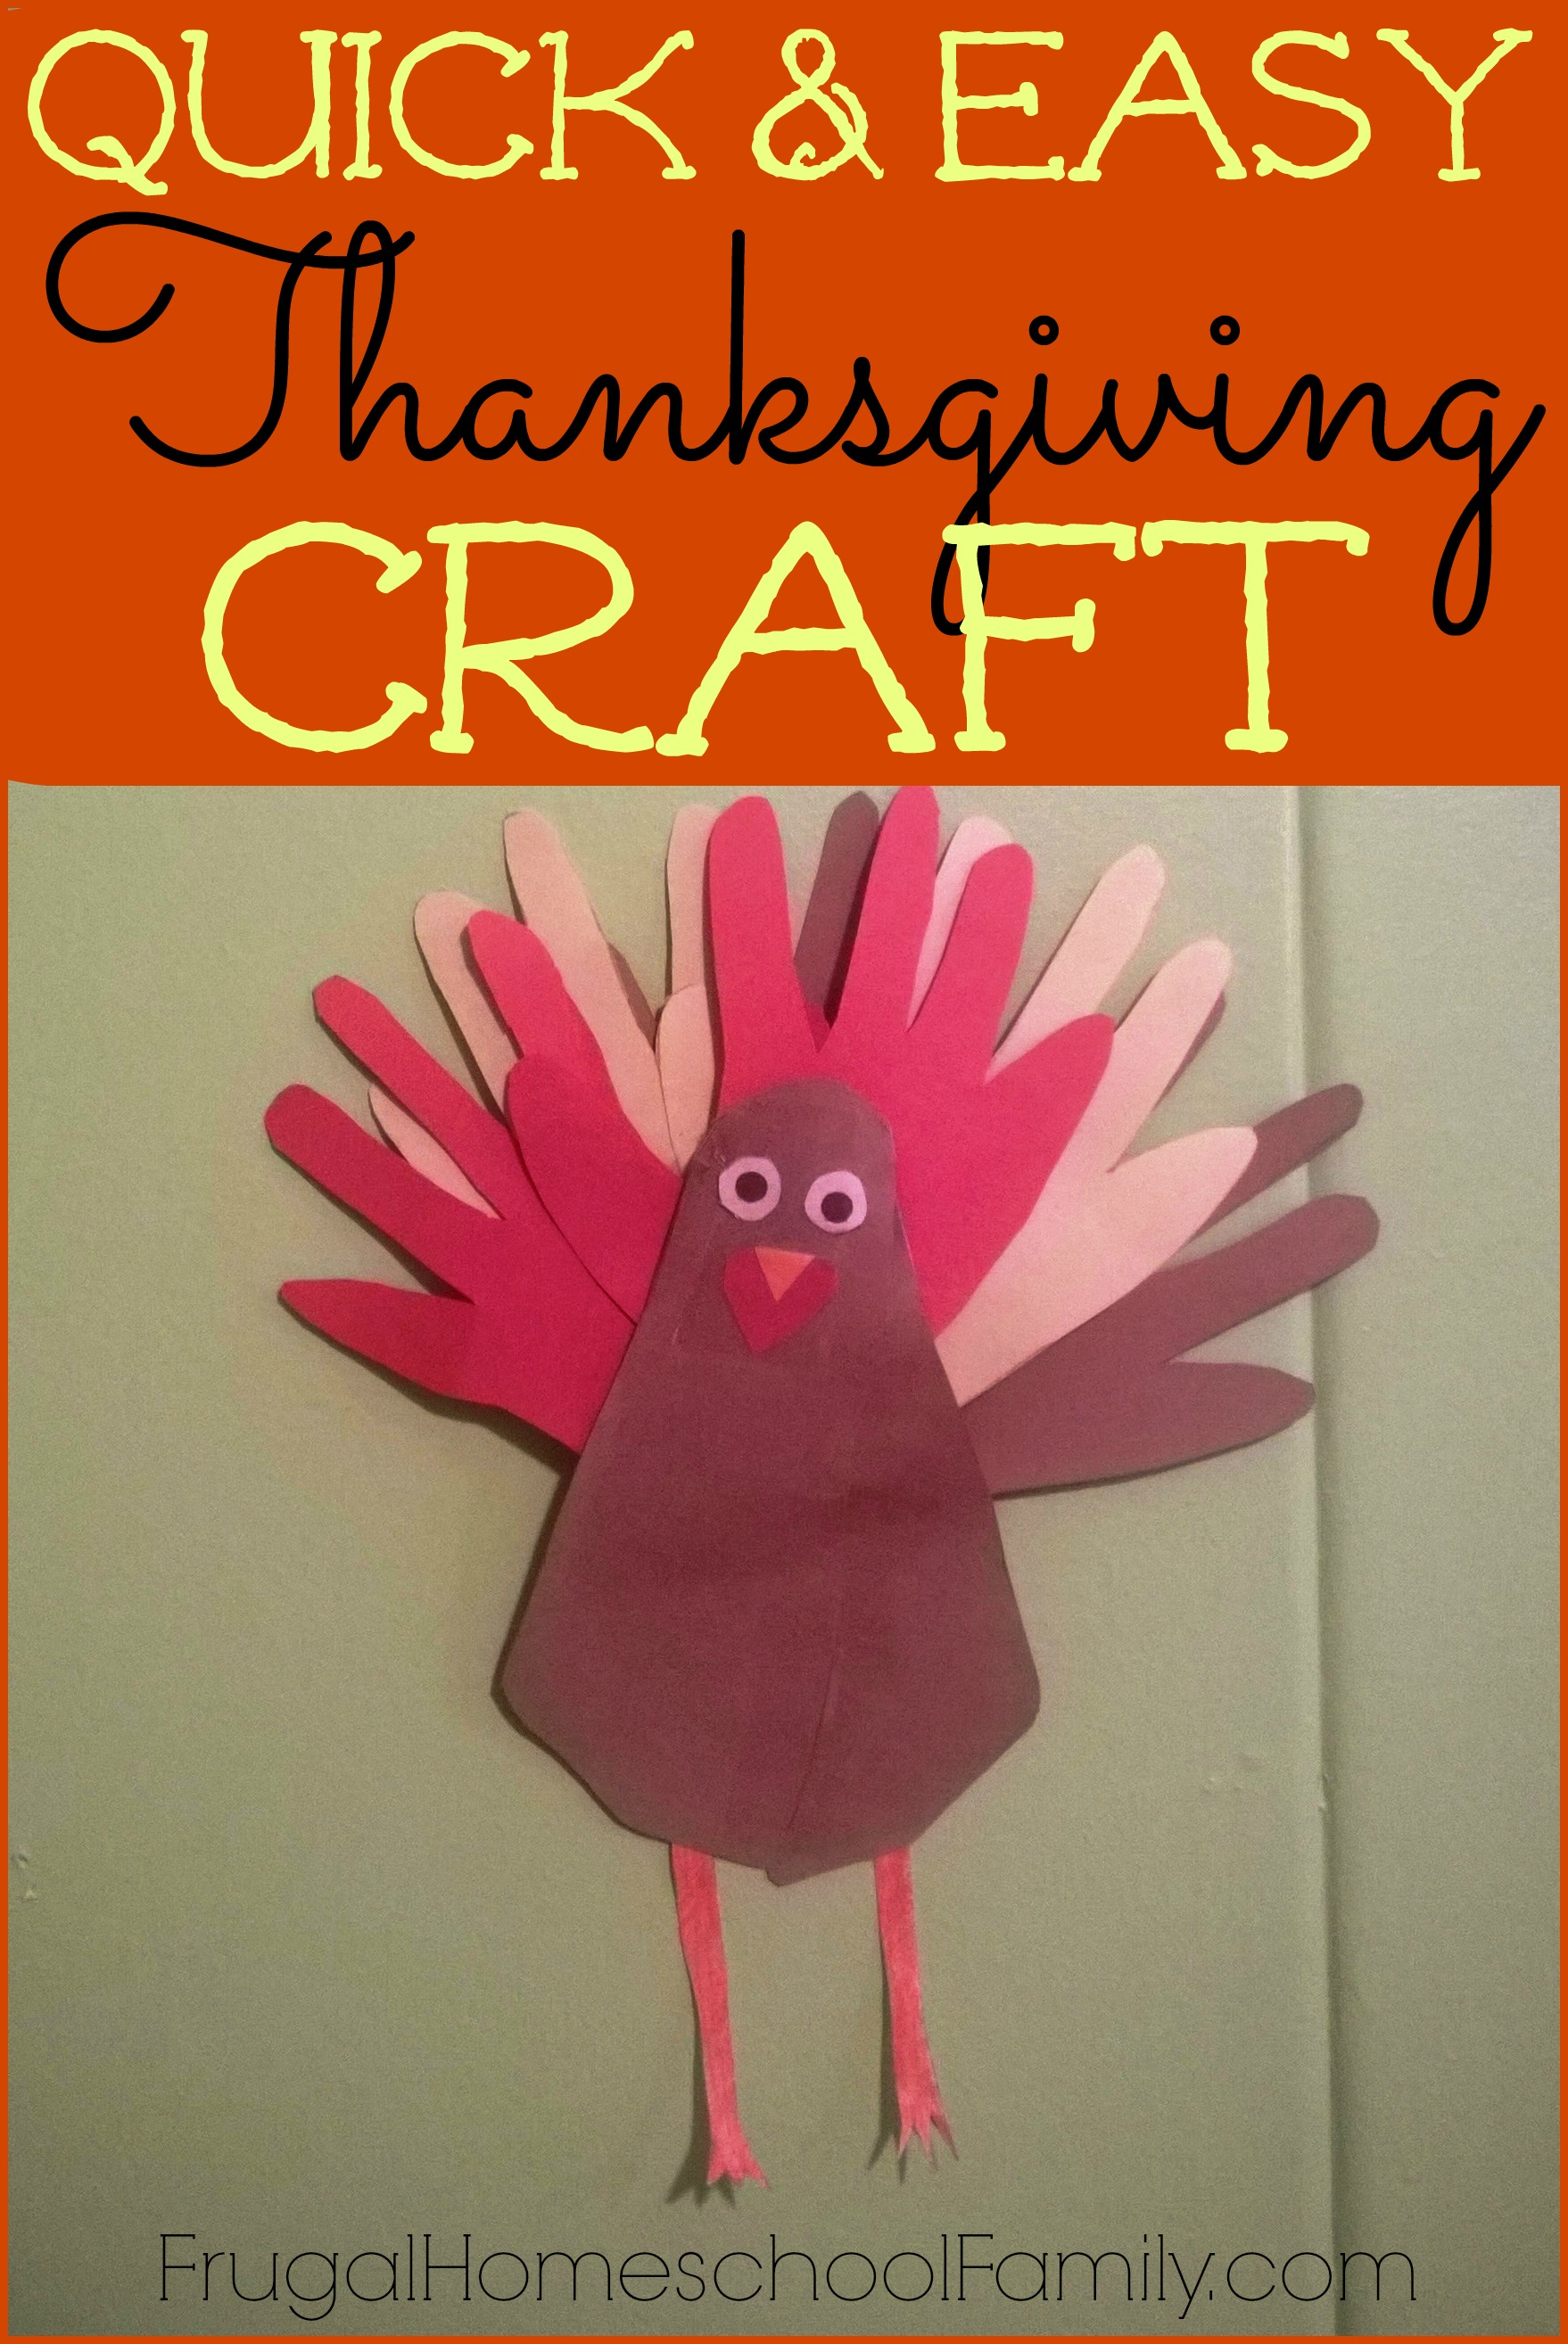 A Thanksgiving Craft that Won't Clutter Up Your House